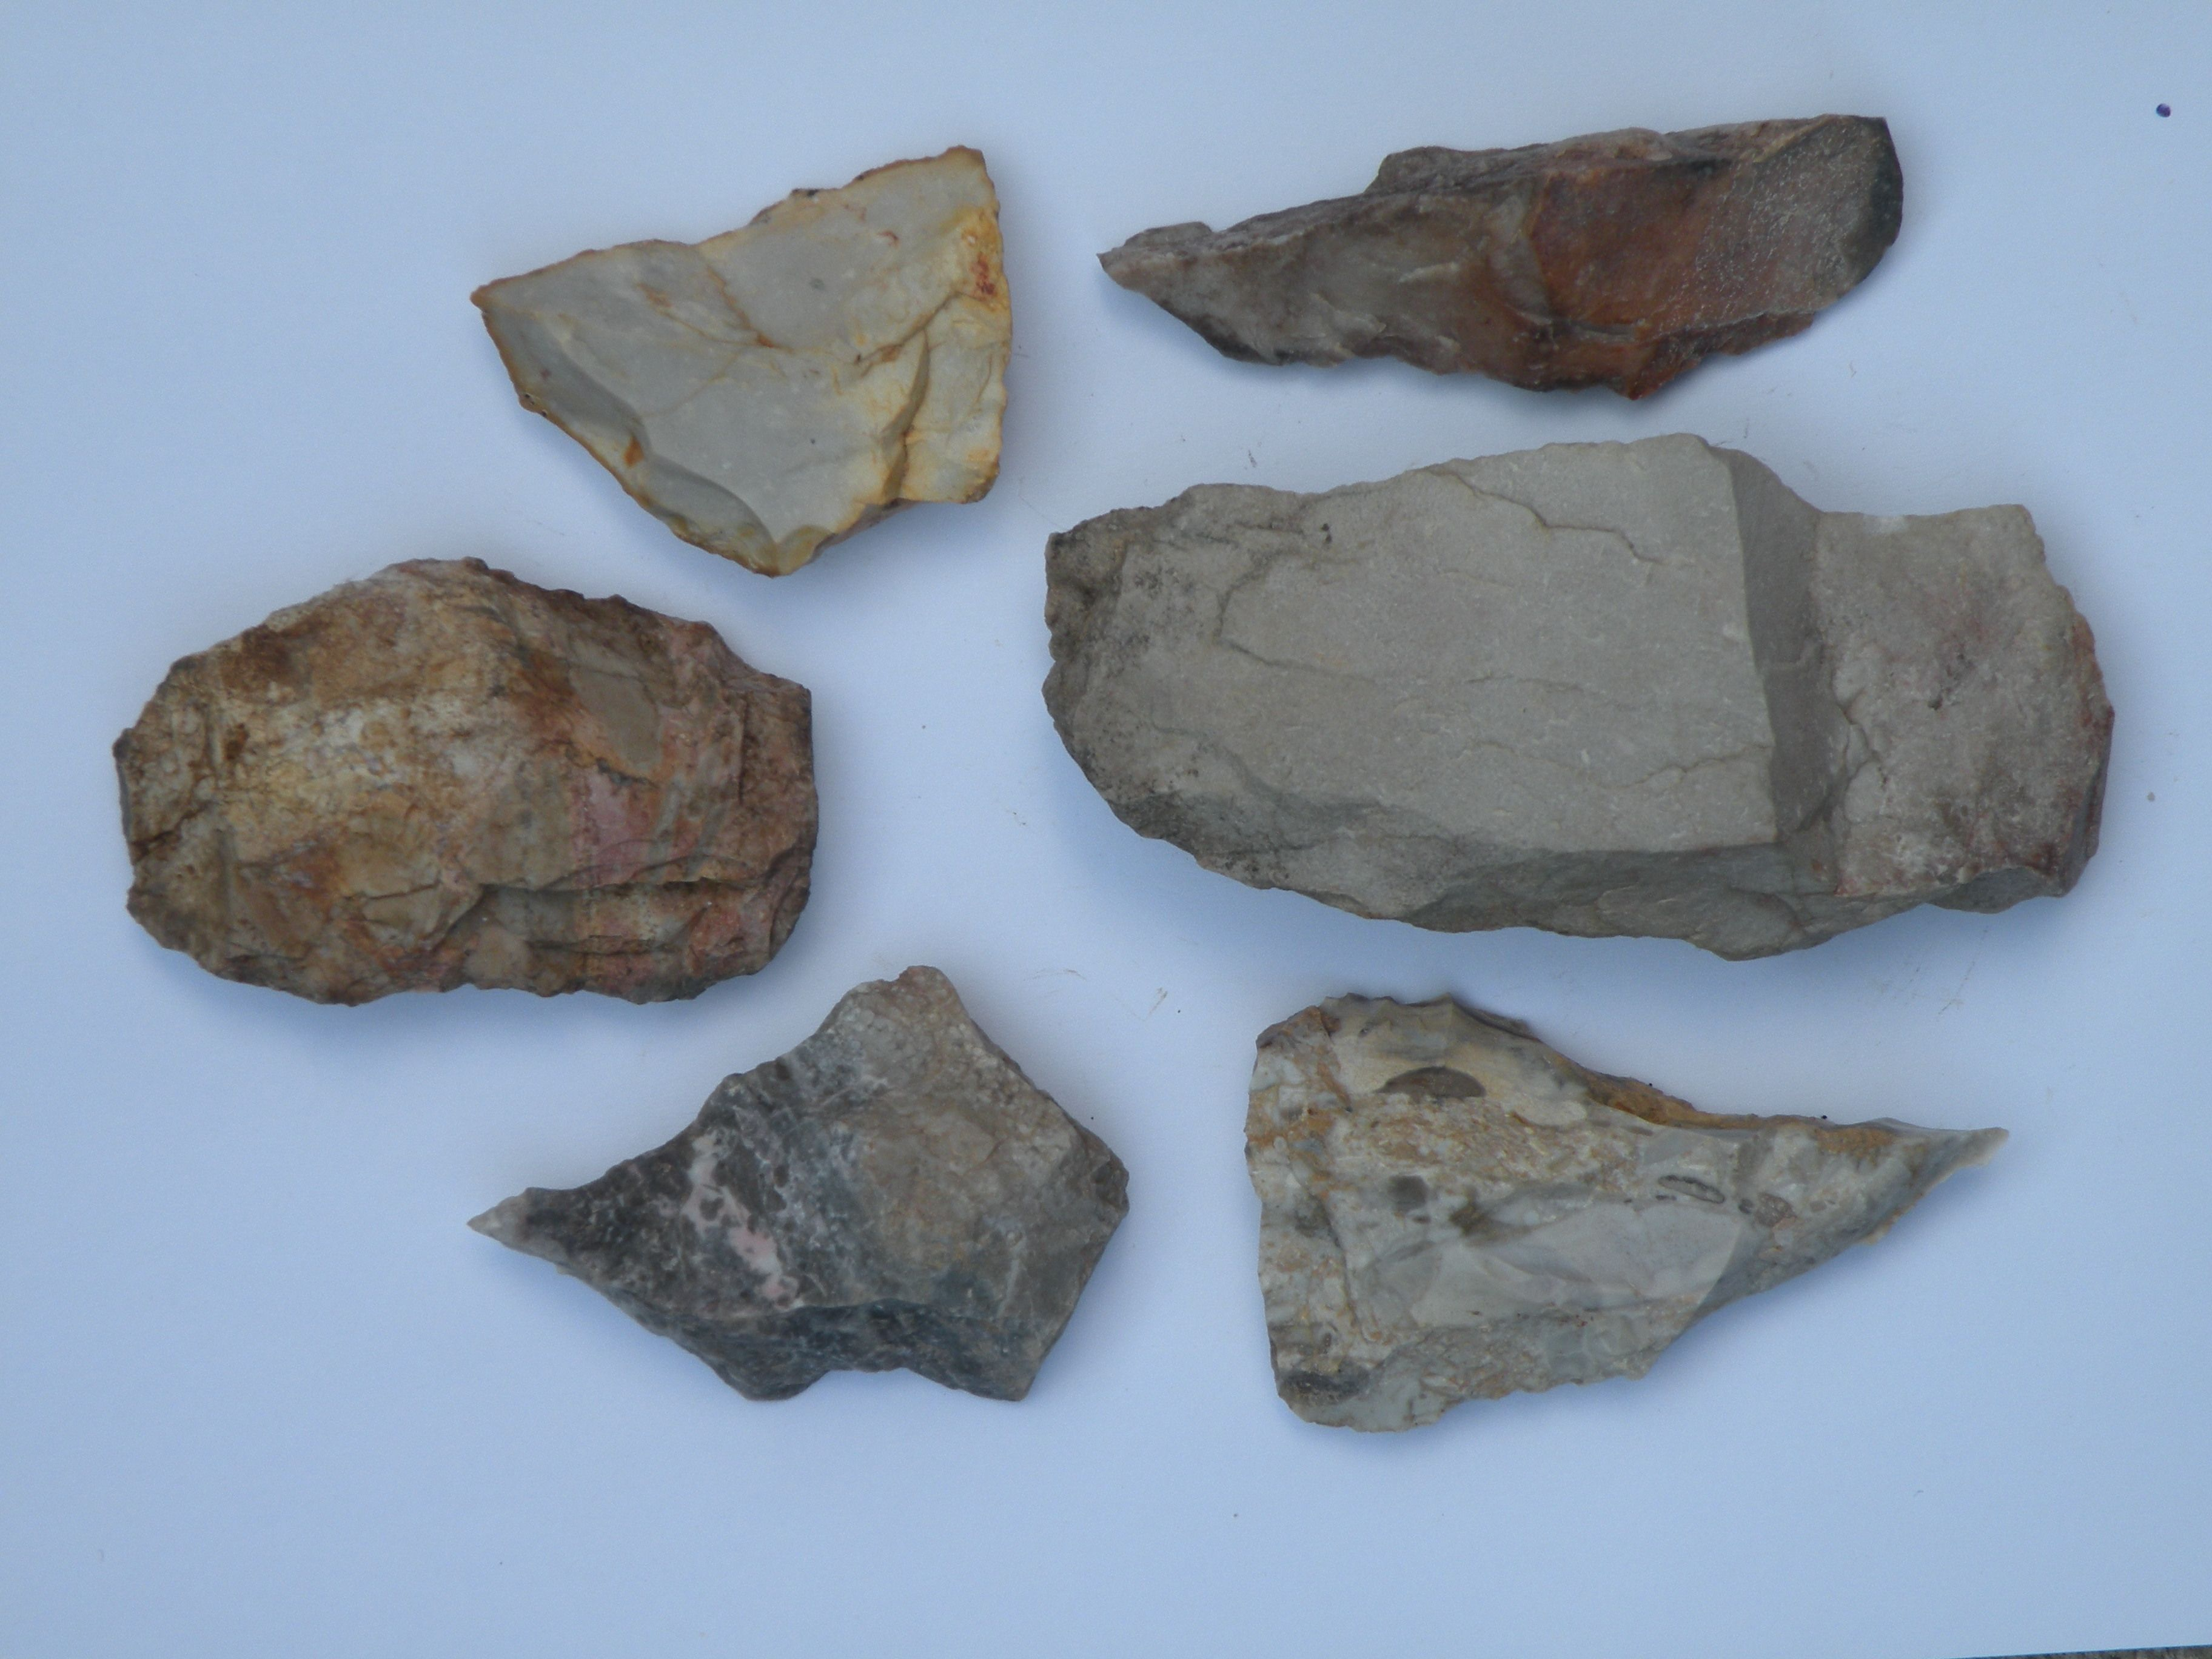 A grouping of large indian artifacts found at rock